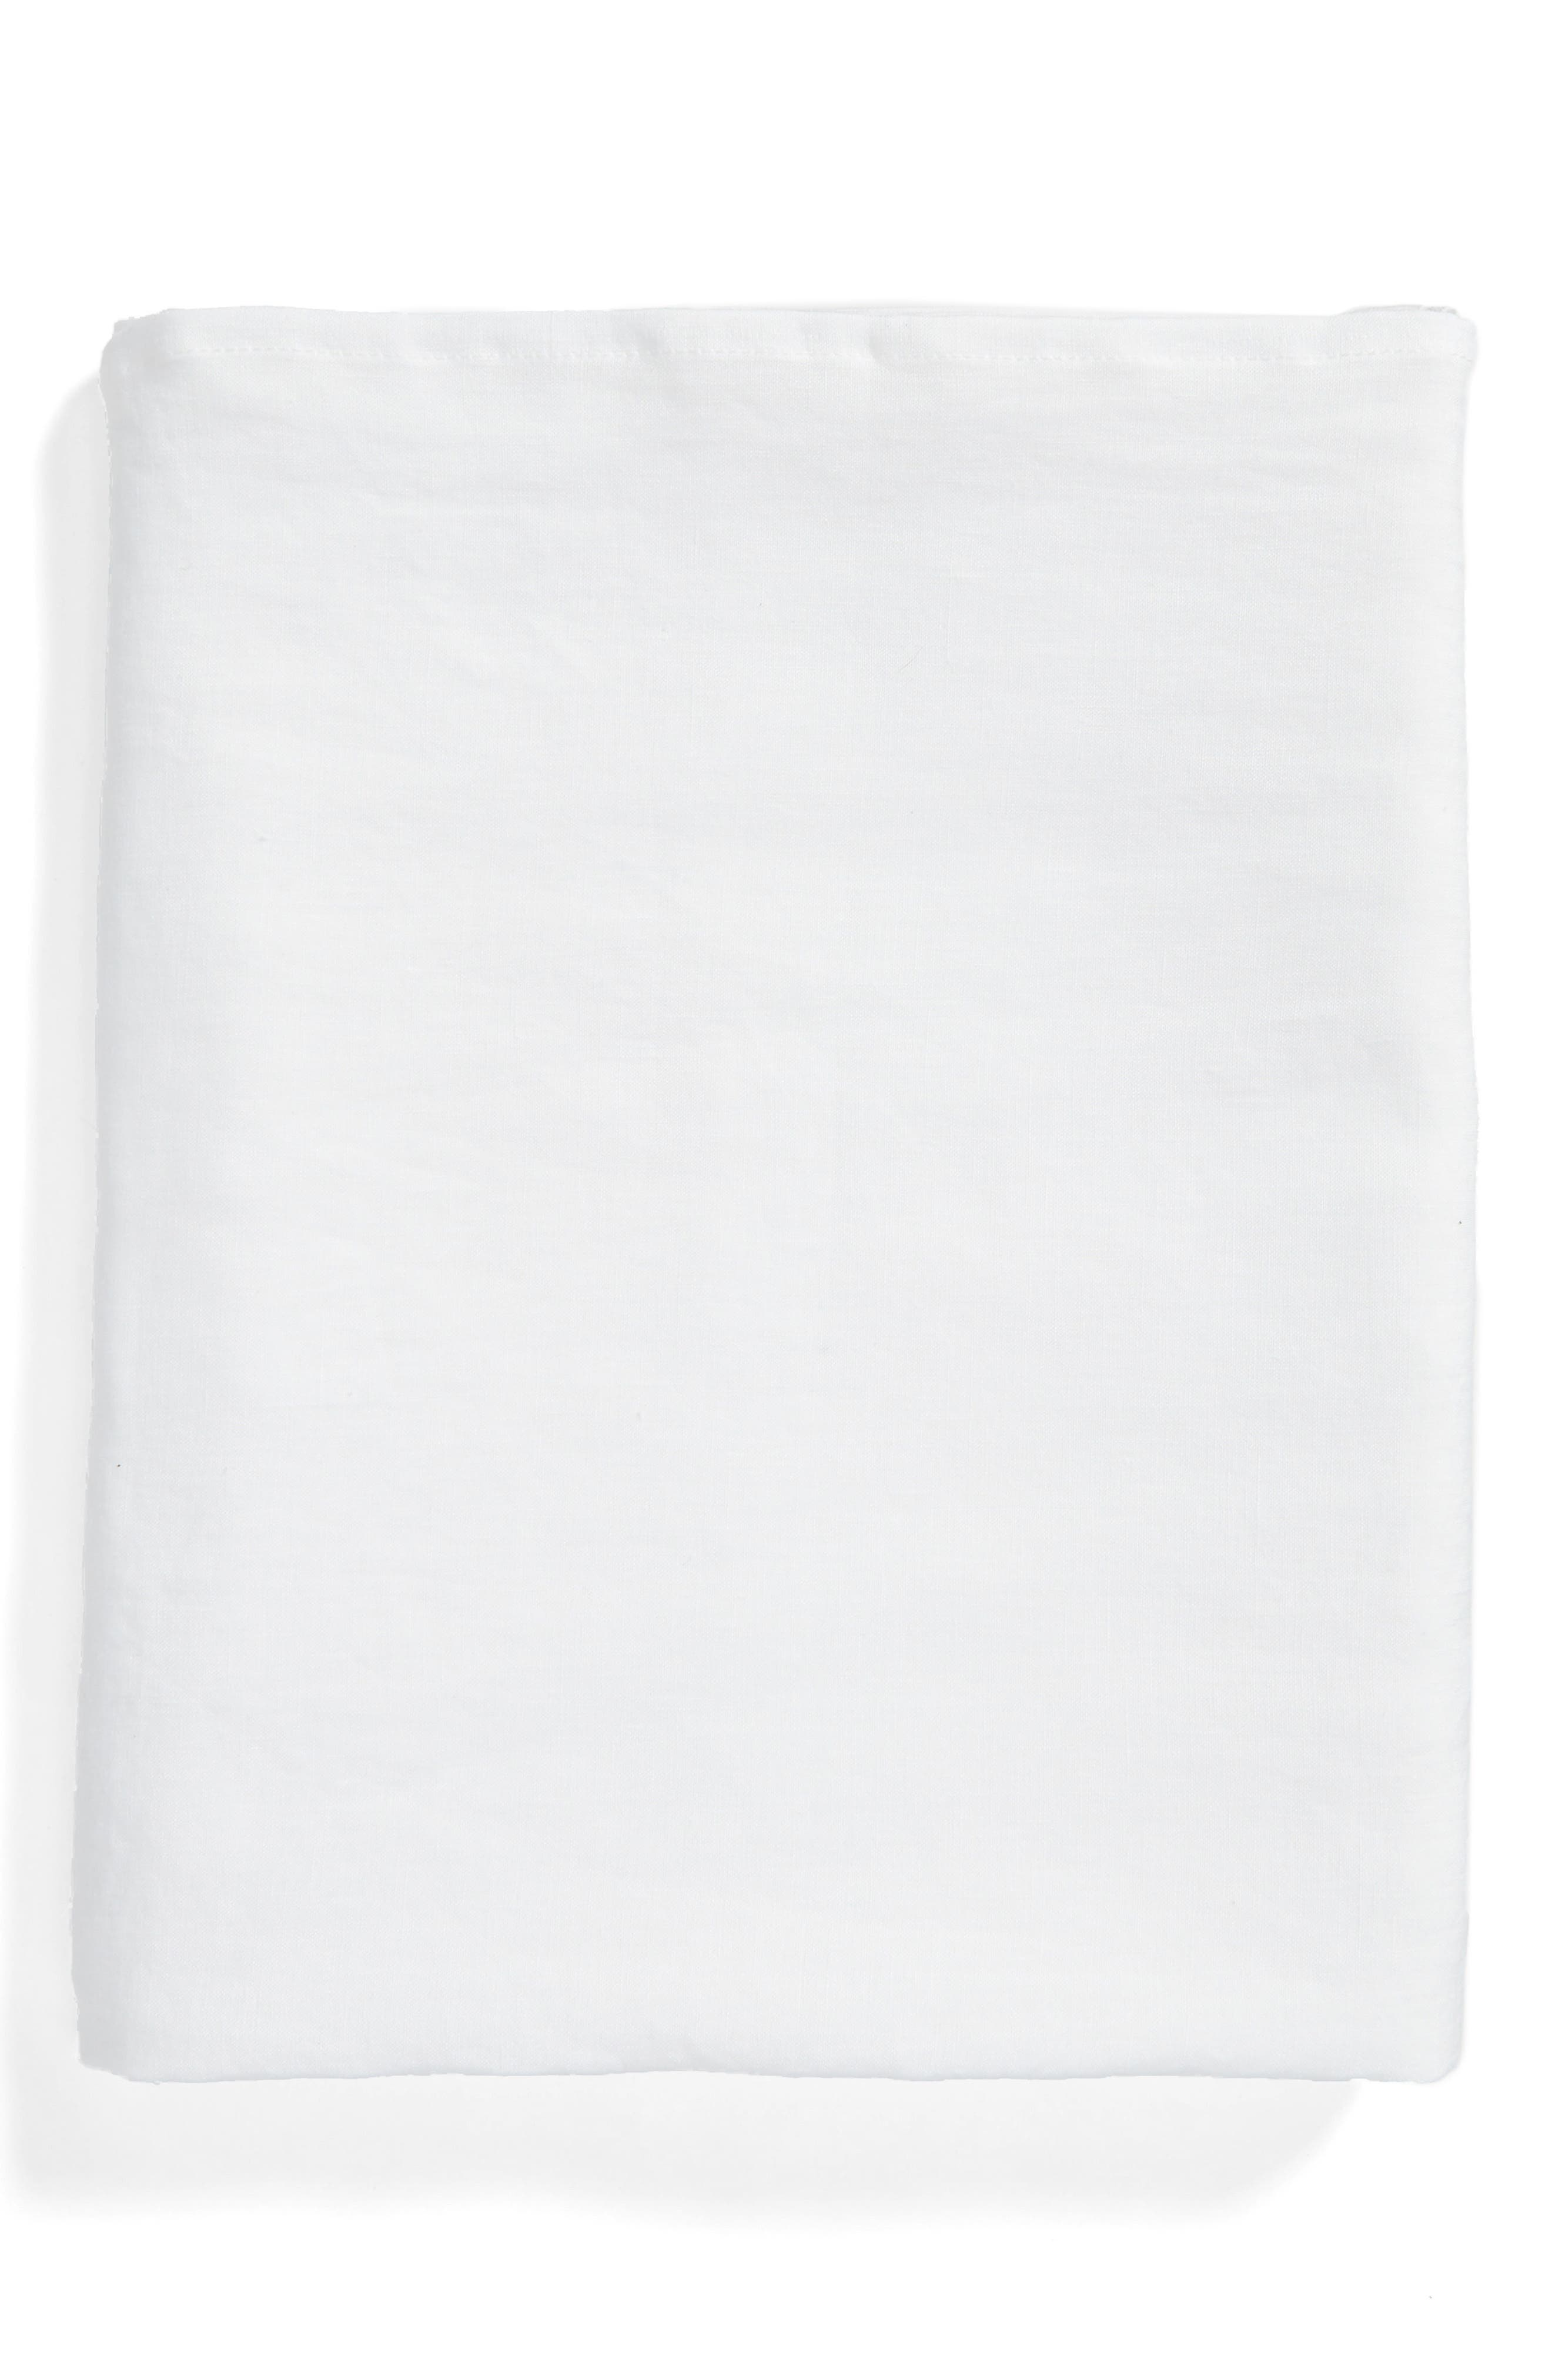 Round Linen Tablecloth,                         Main,                         color, White